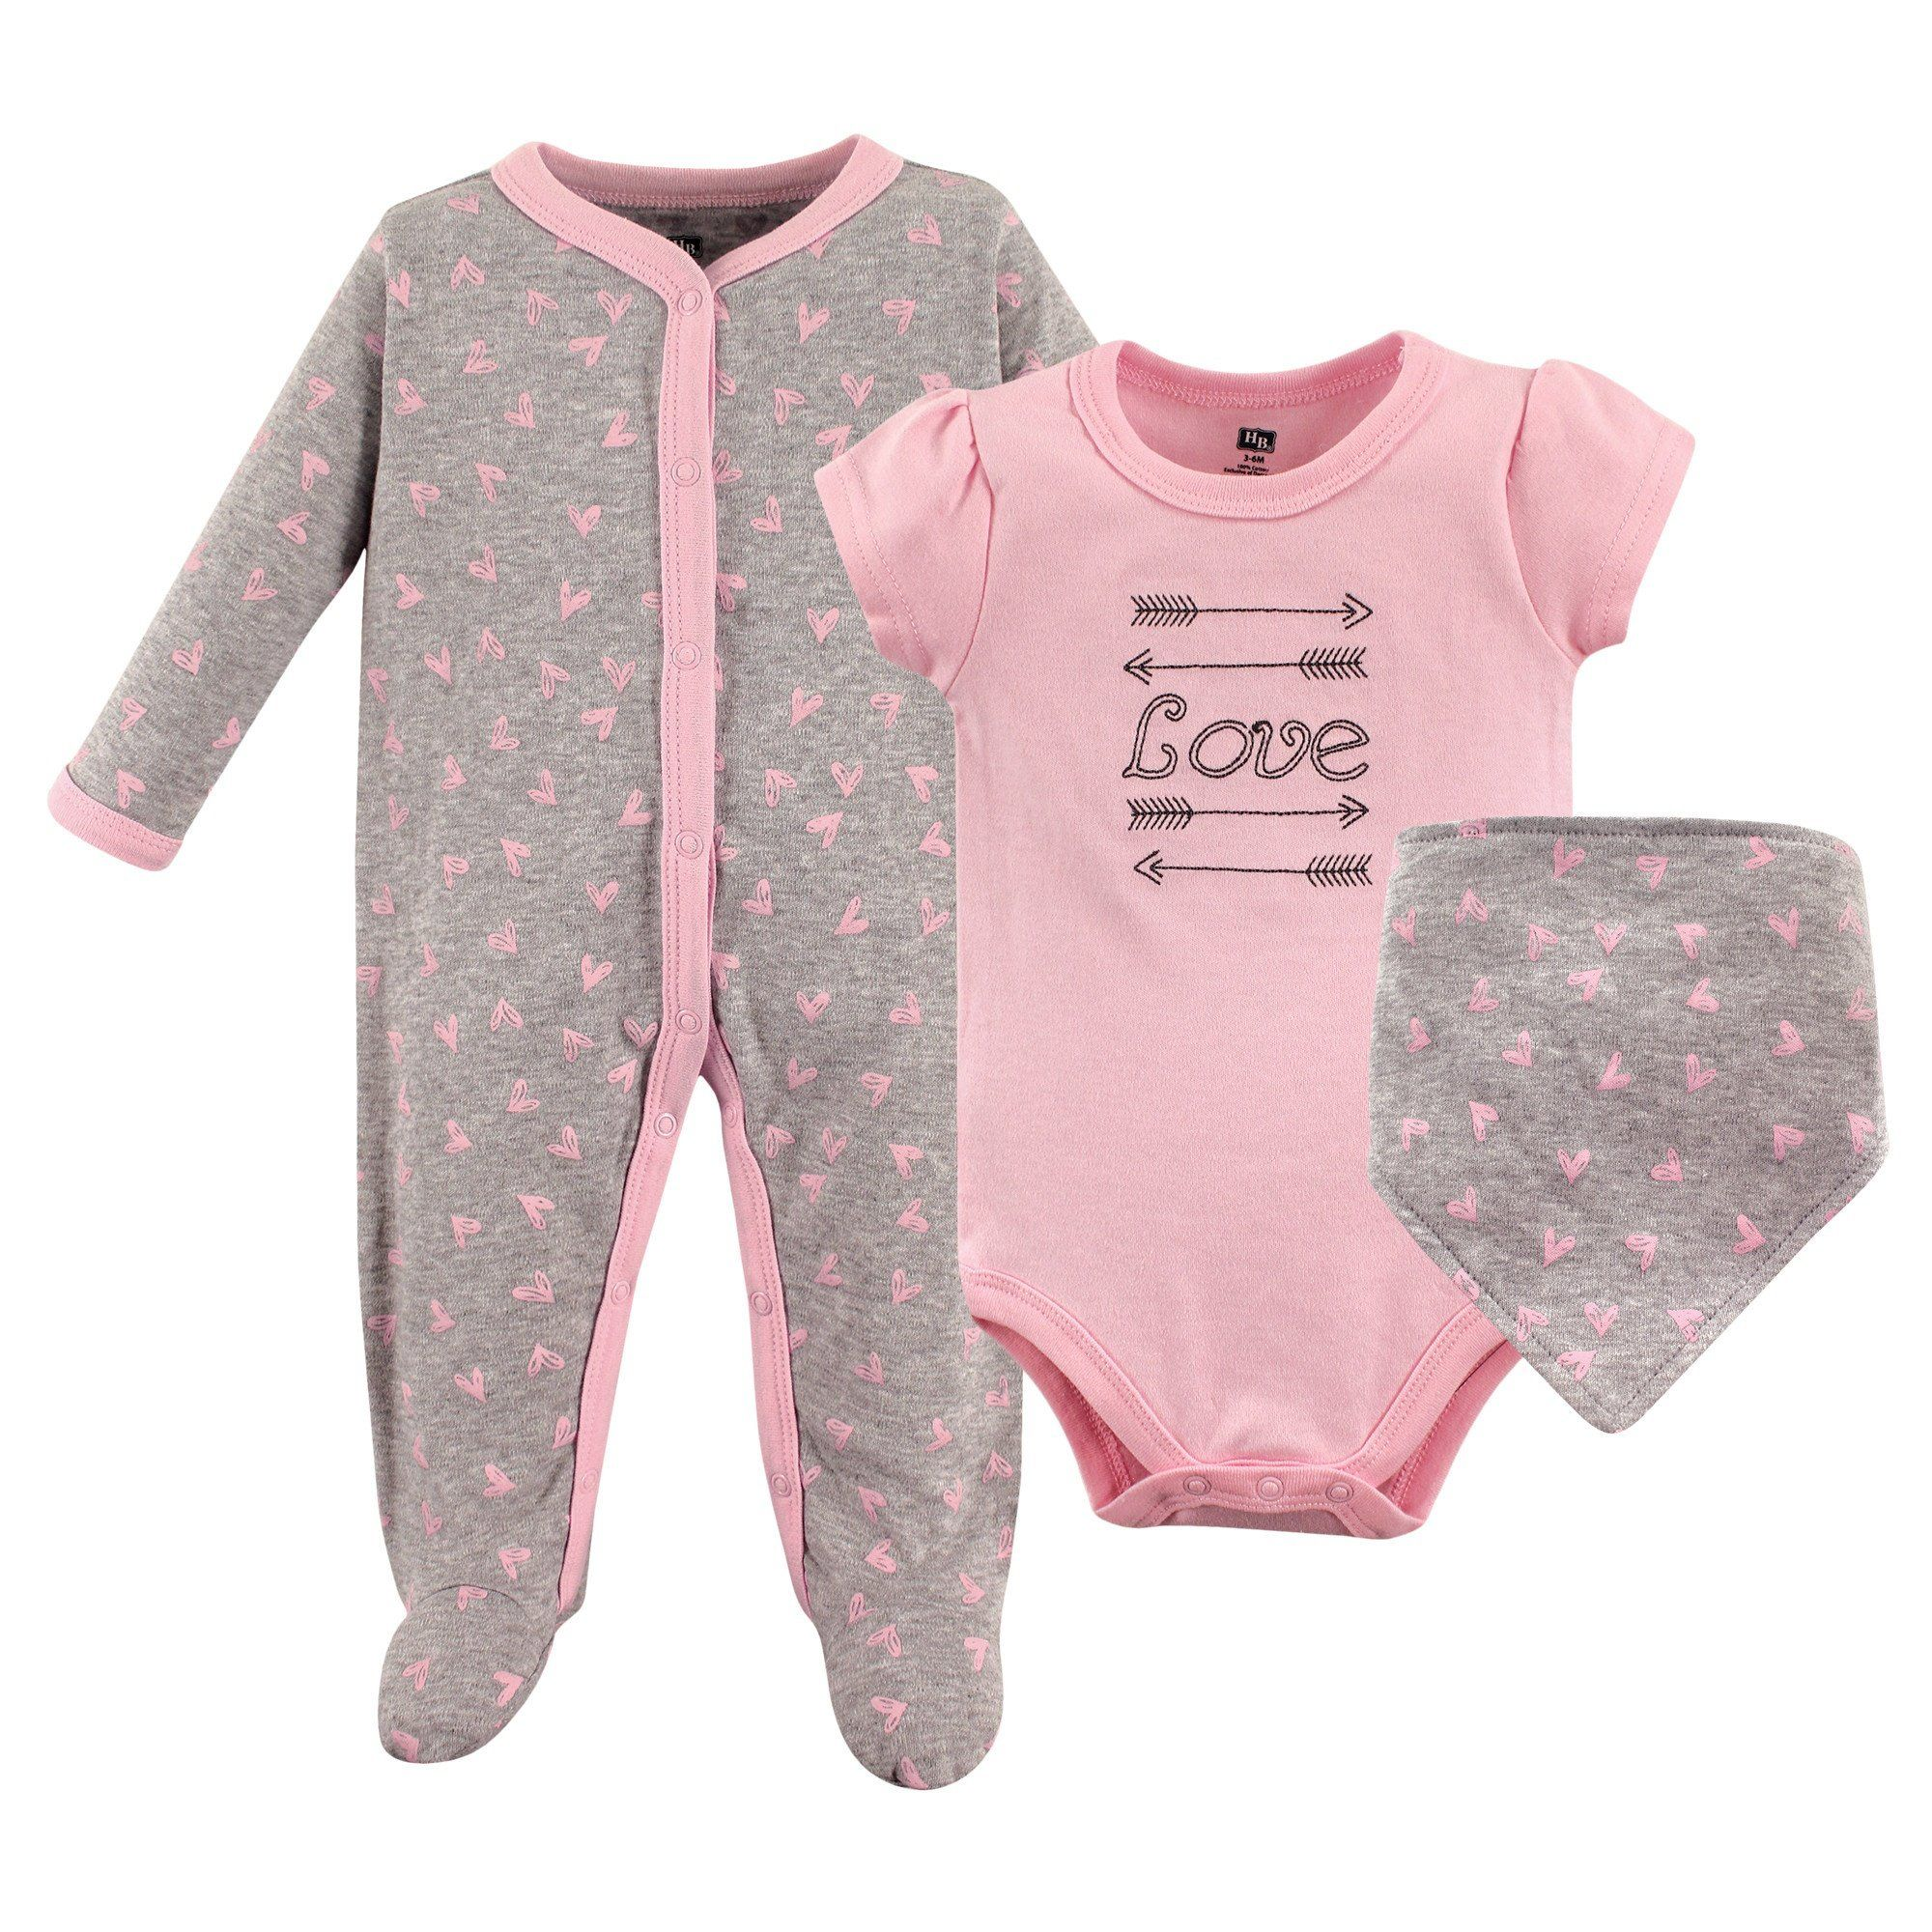 Hudson Baby Layette Clothing Set 3 Pieces